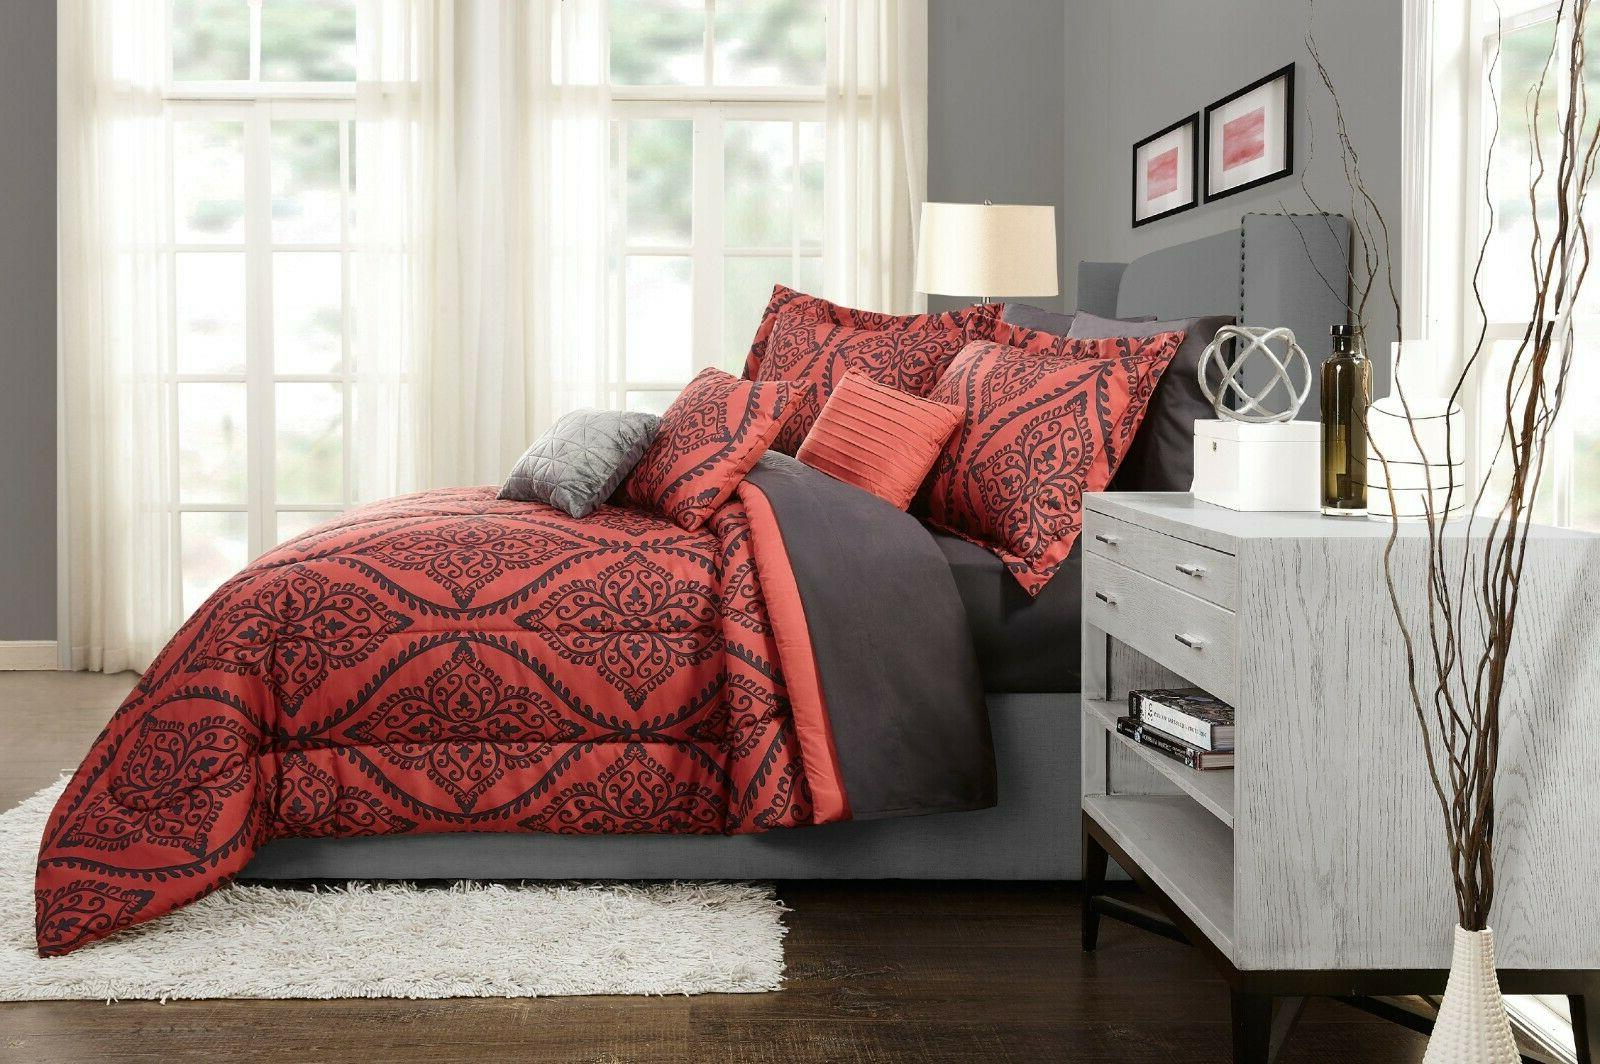 Red Comforter Set Sheets Pillows Bedroom